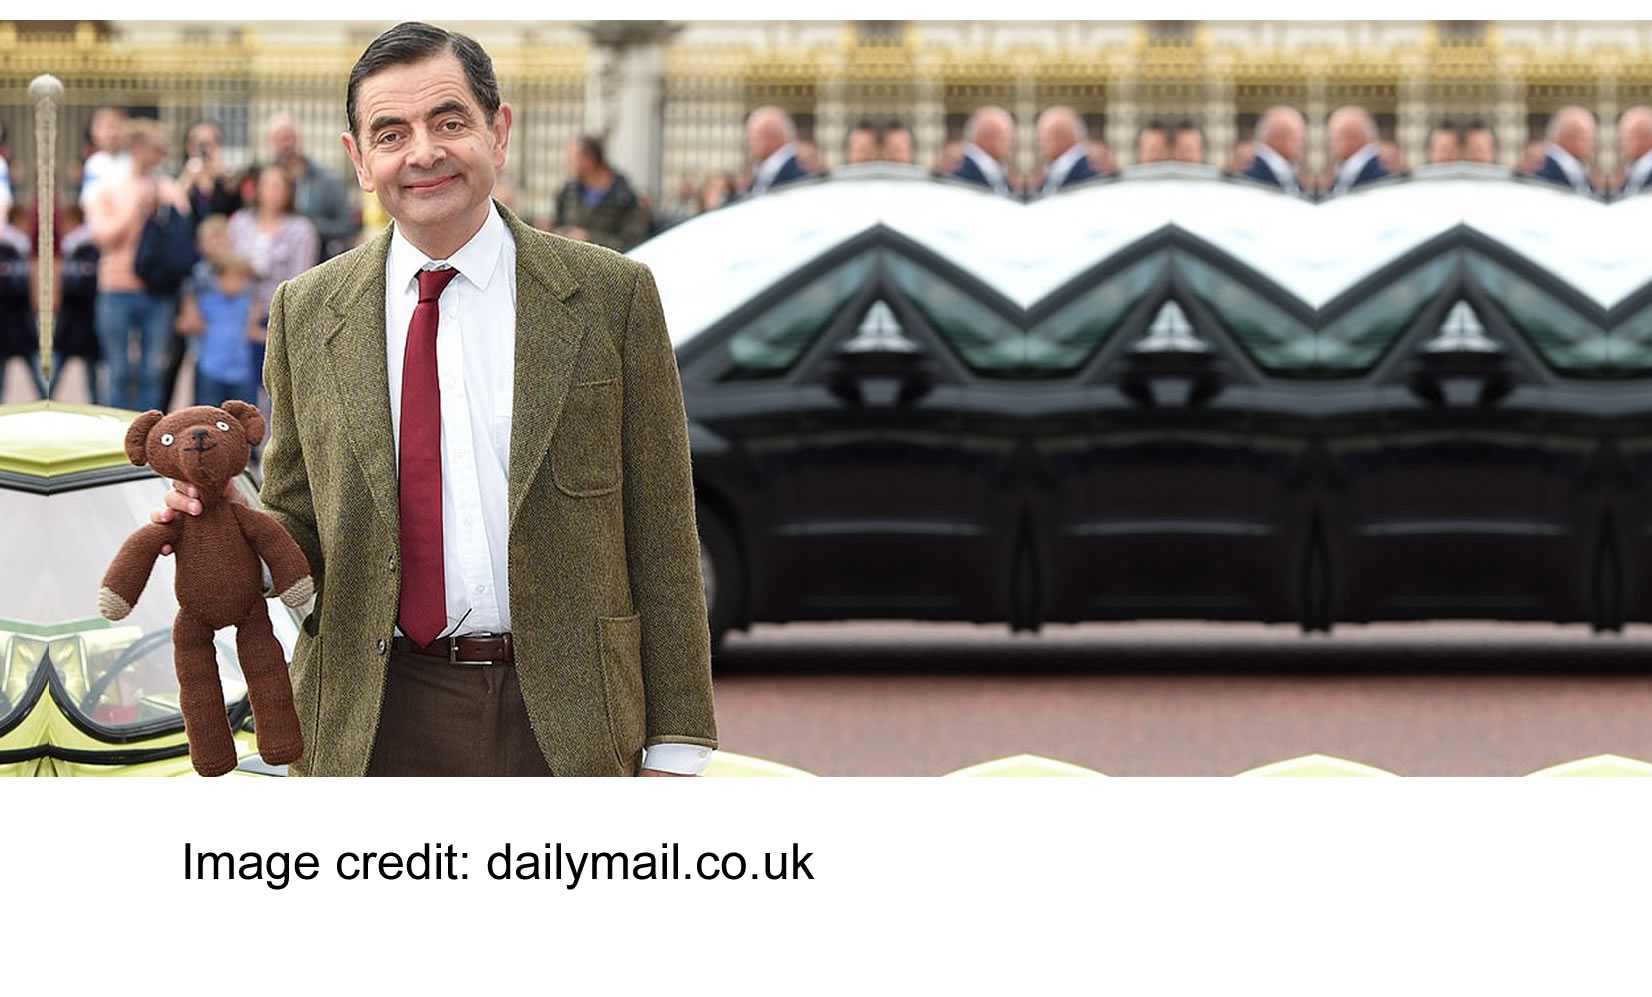 He will never play the role of Mr. Bean again?